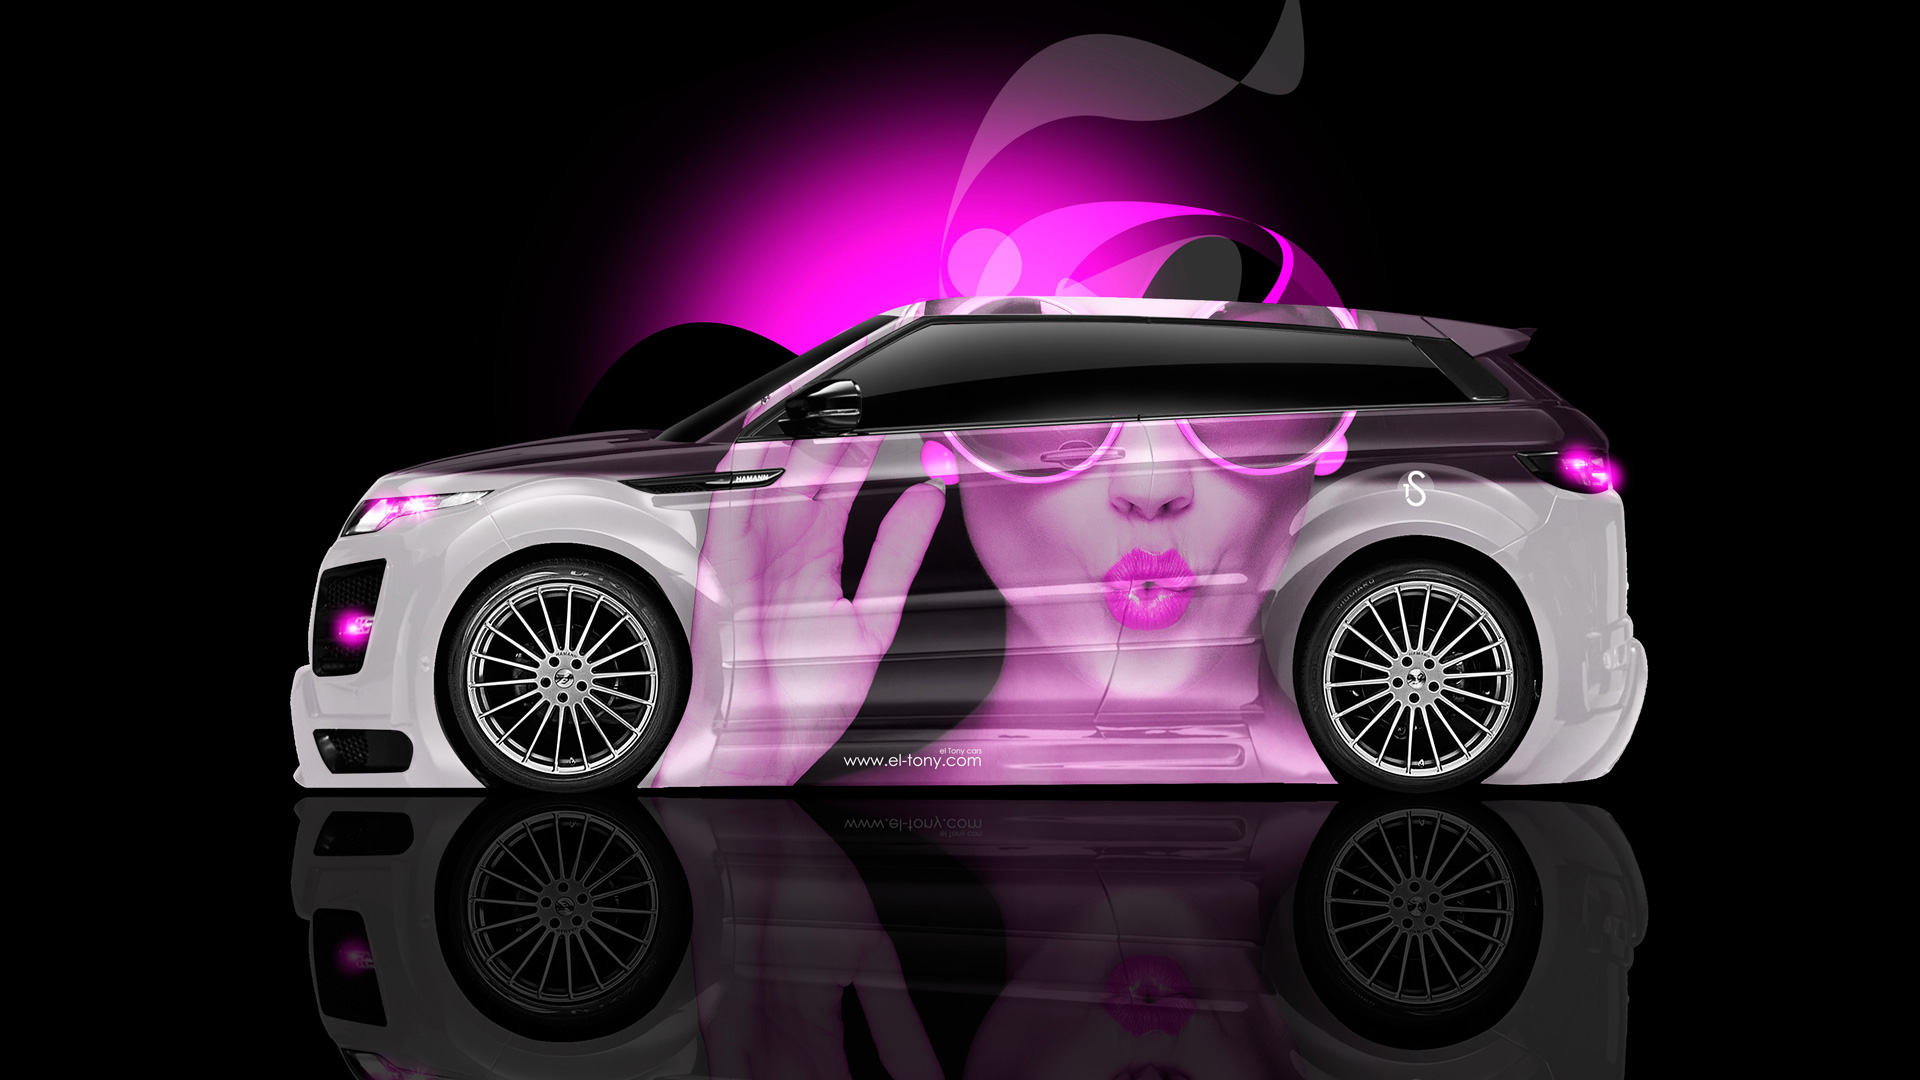 ... Land Rover Evoque Glamour Girl Aerography Car 2014